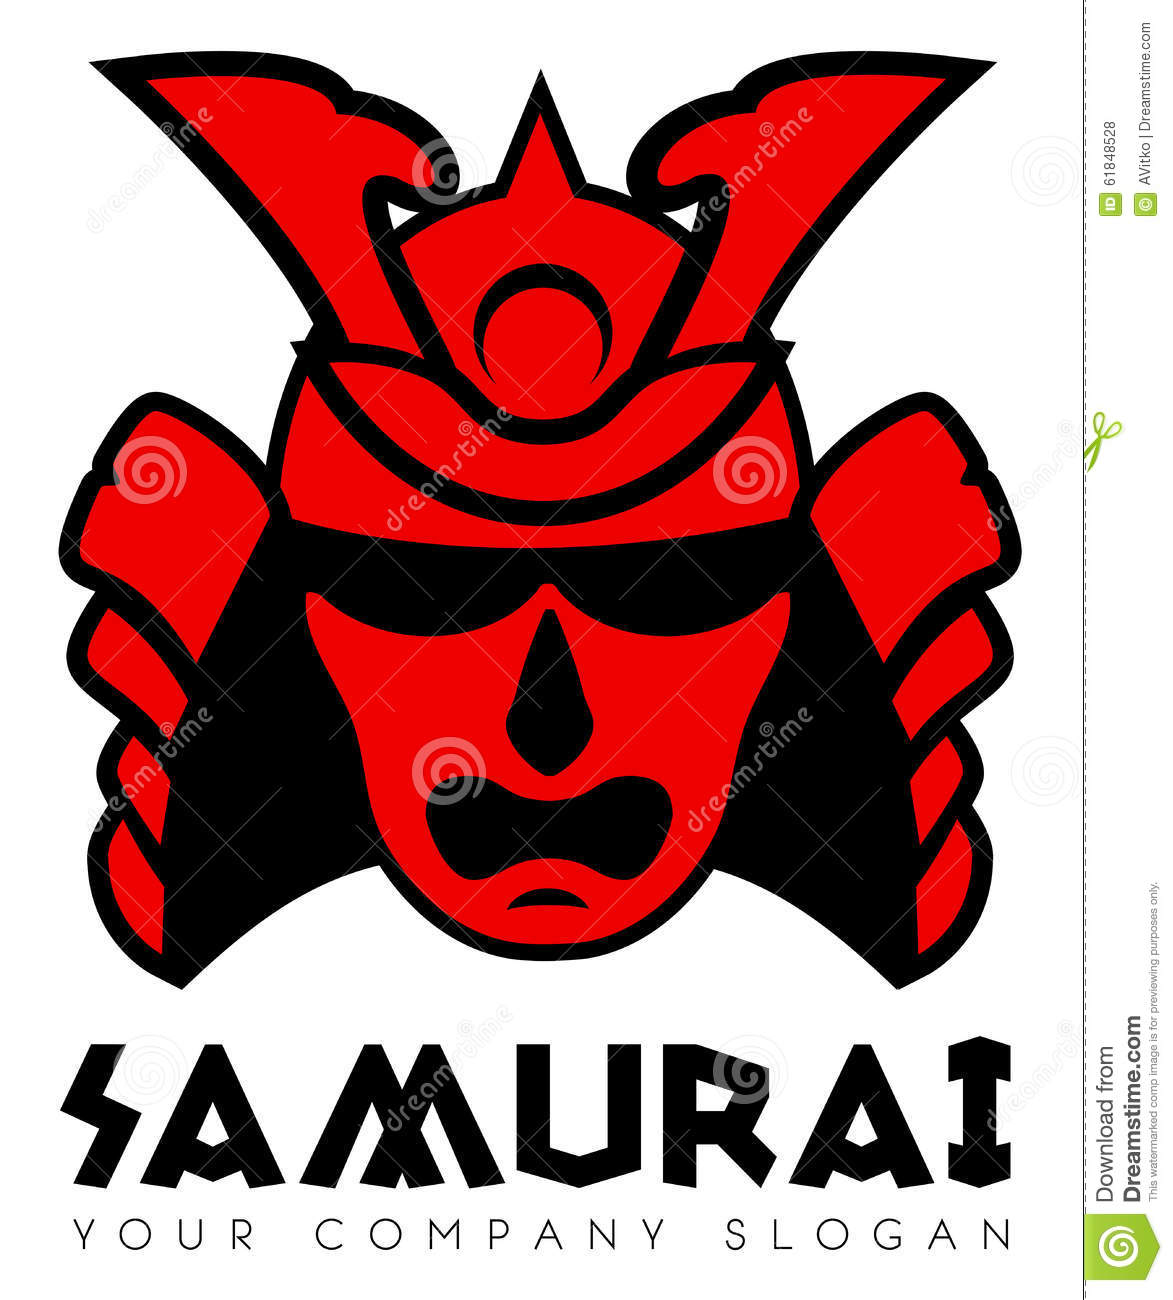 Samurai Face Mask Logo Stock Vector - Image: 61848528